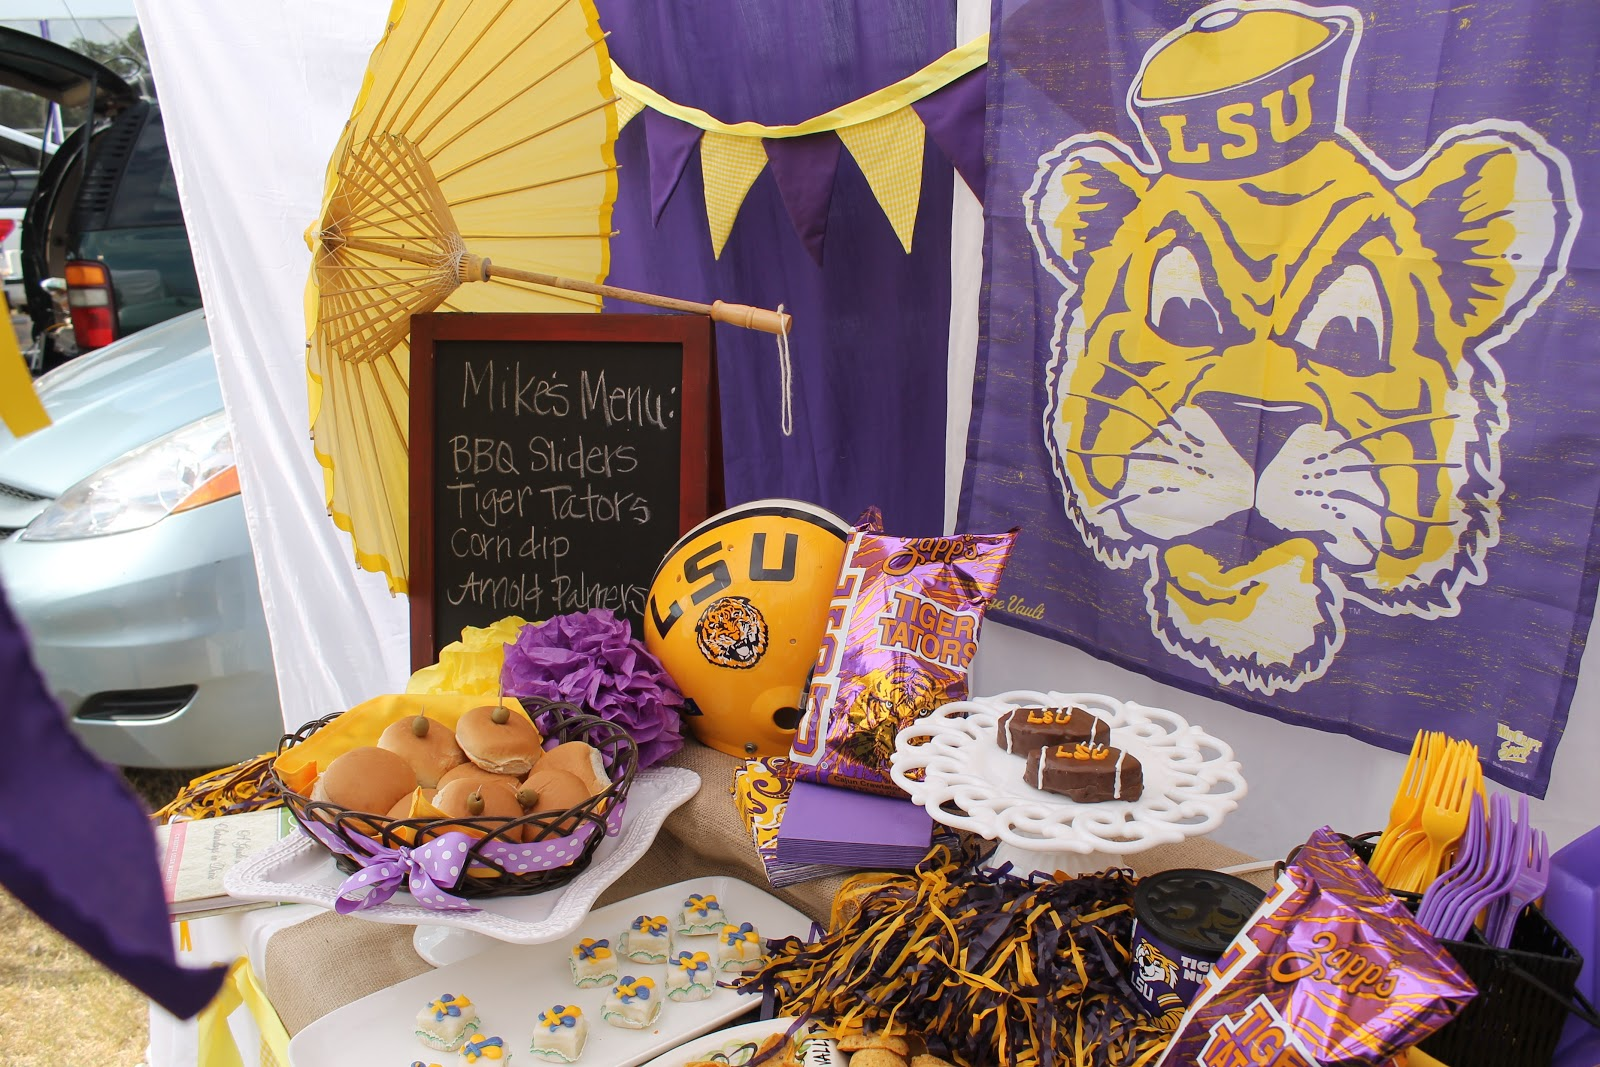 No Fault Sport Group Lsu Ranked The #1 Tailgating Spot In. Soundproof Room Dividers. Patons Decor Yarn. Sports Room Decor. Gaming Room Decor